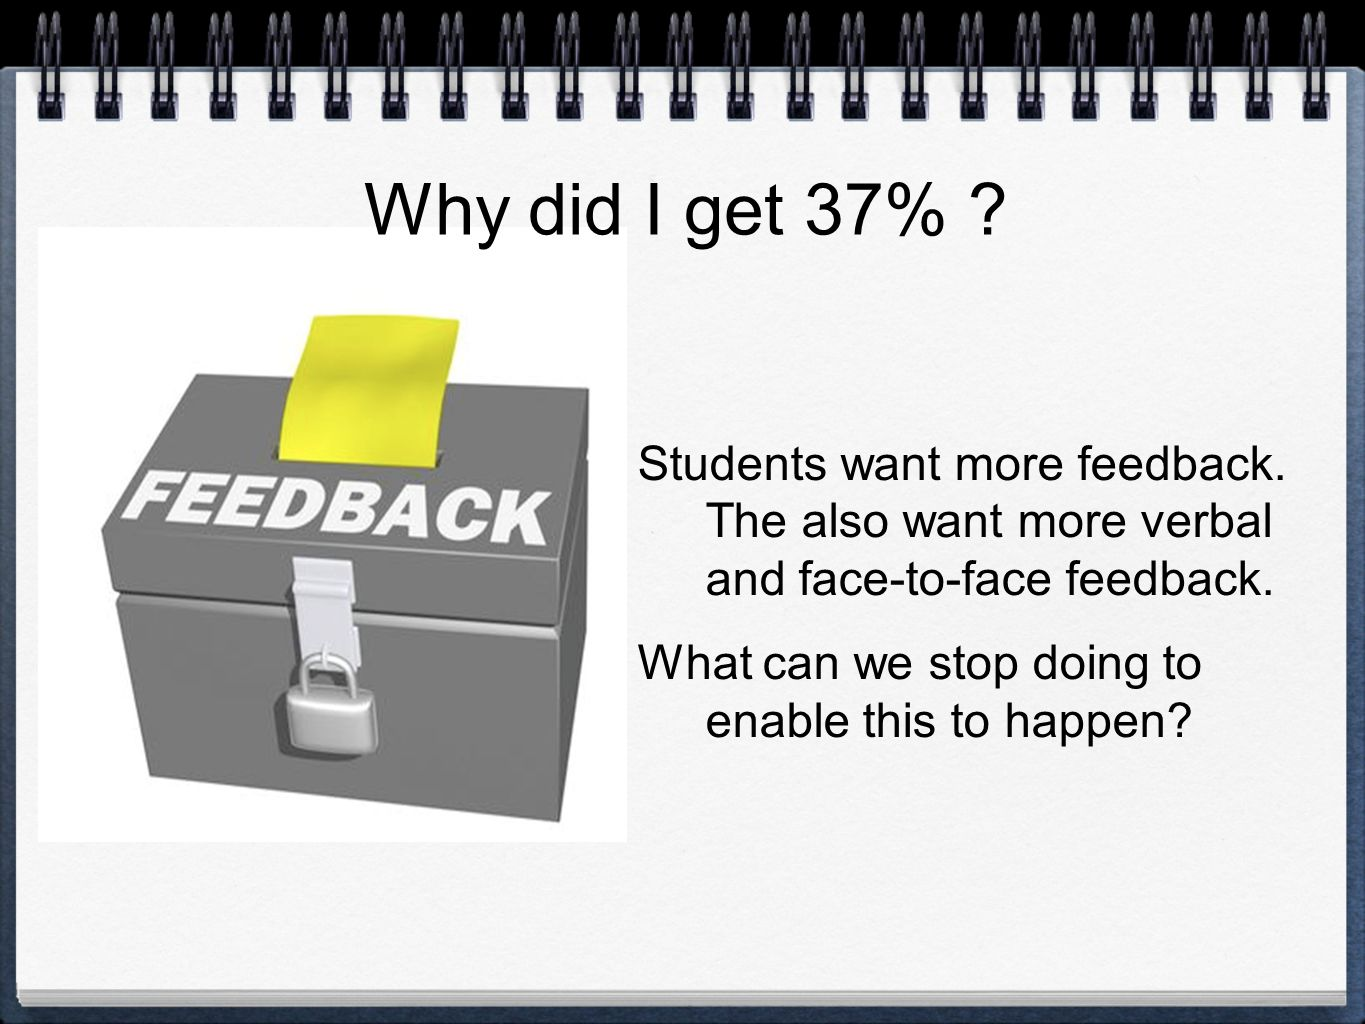 Students want more feedback. The also want more verbal and face-to-face feedback.